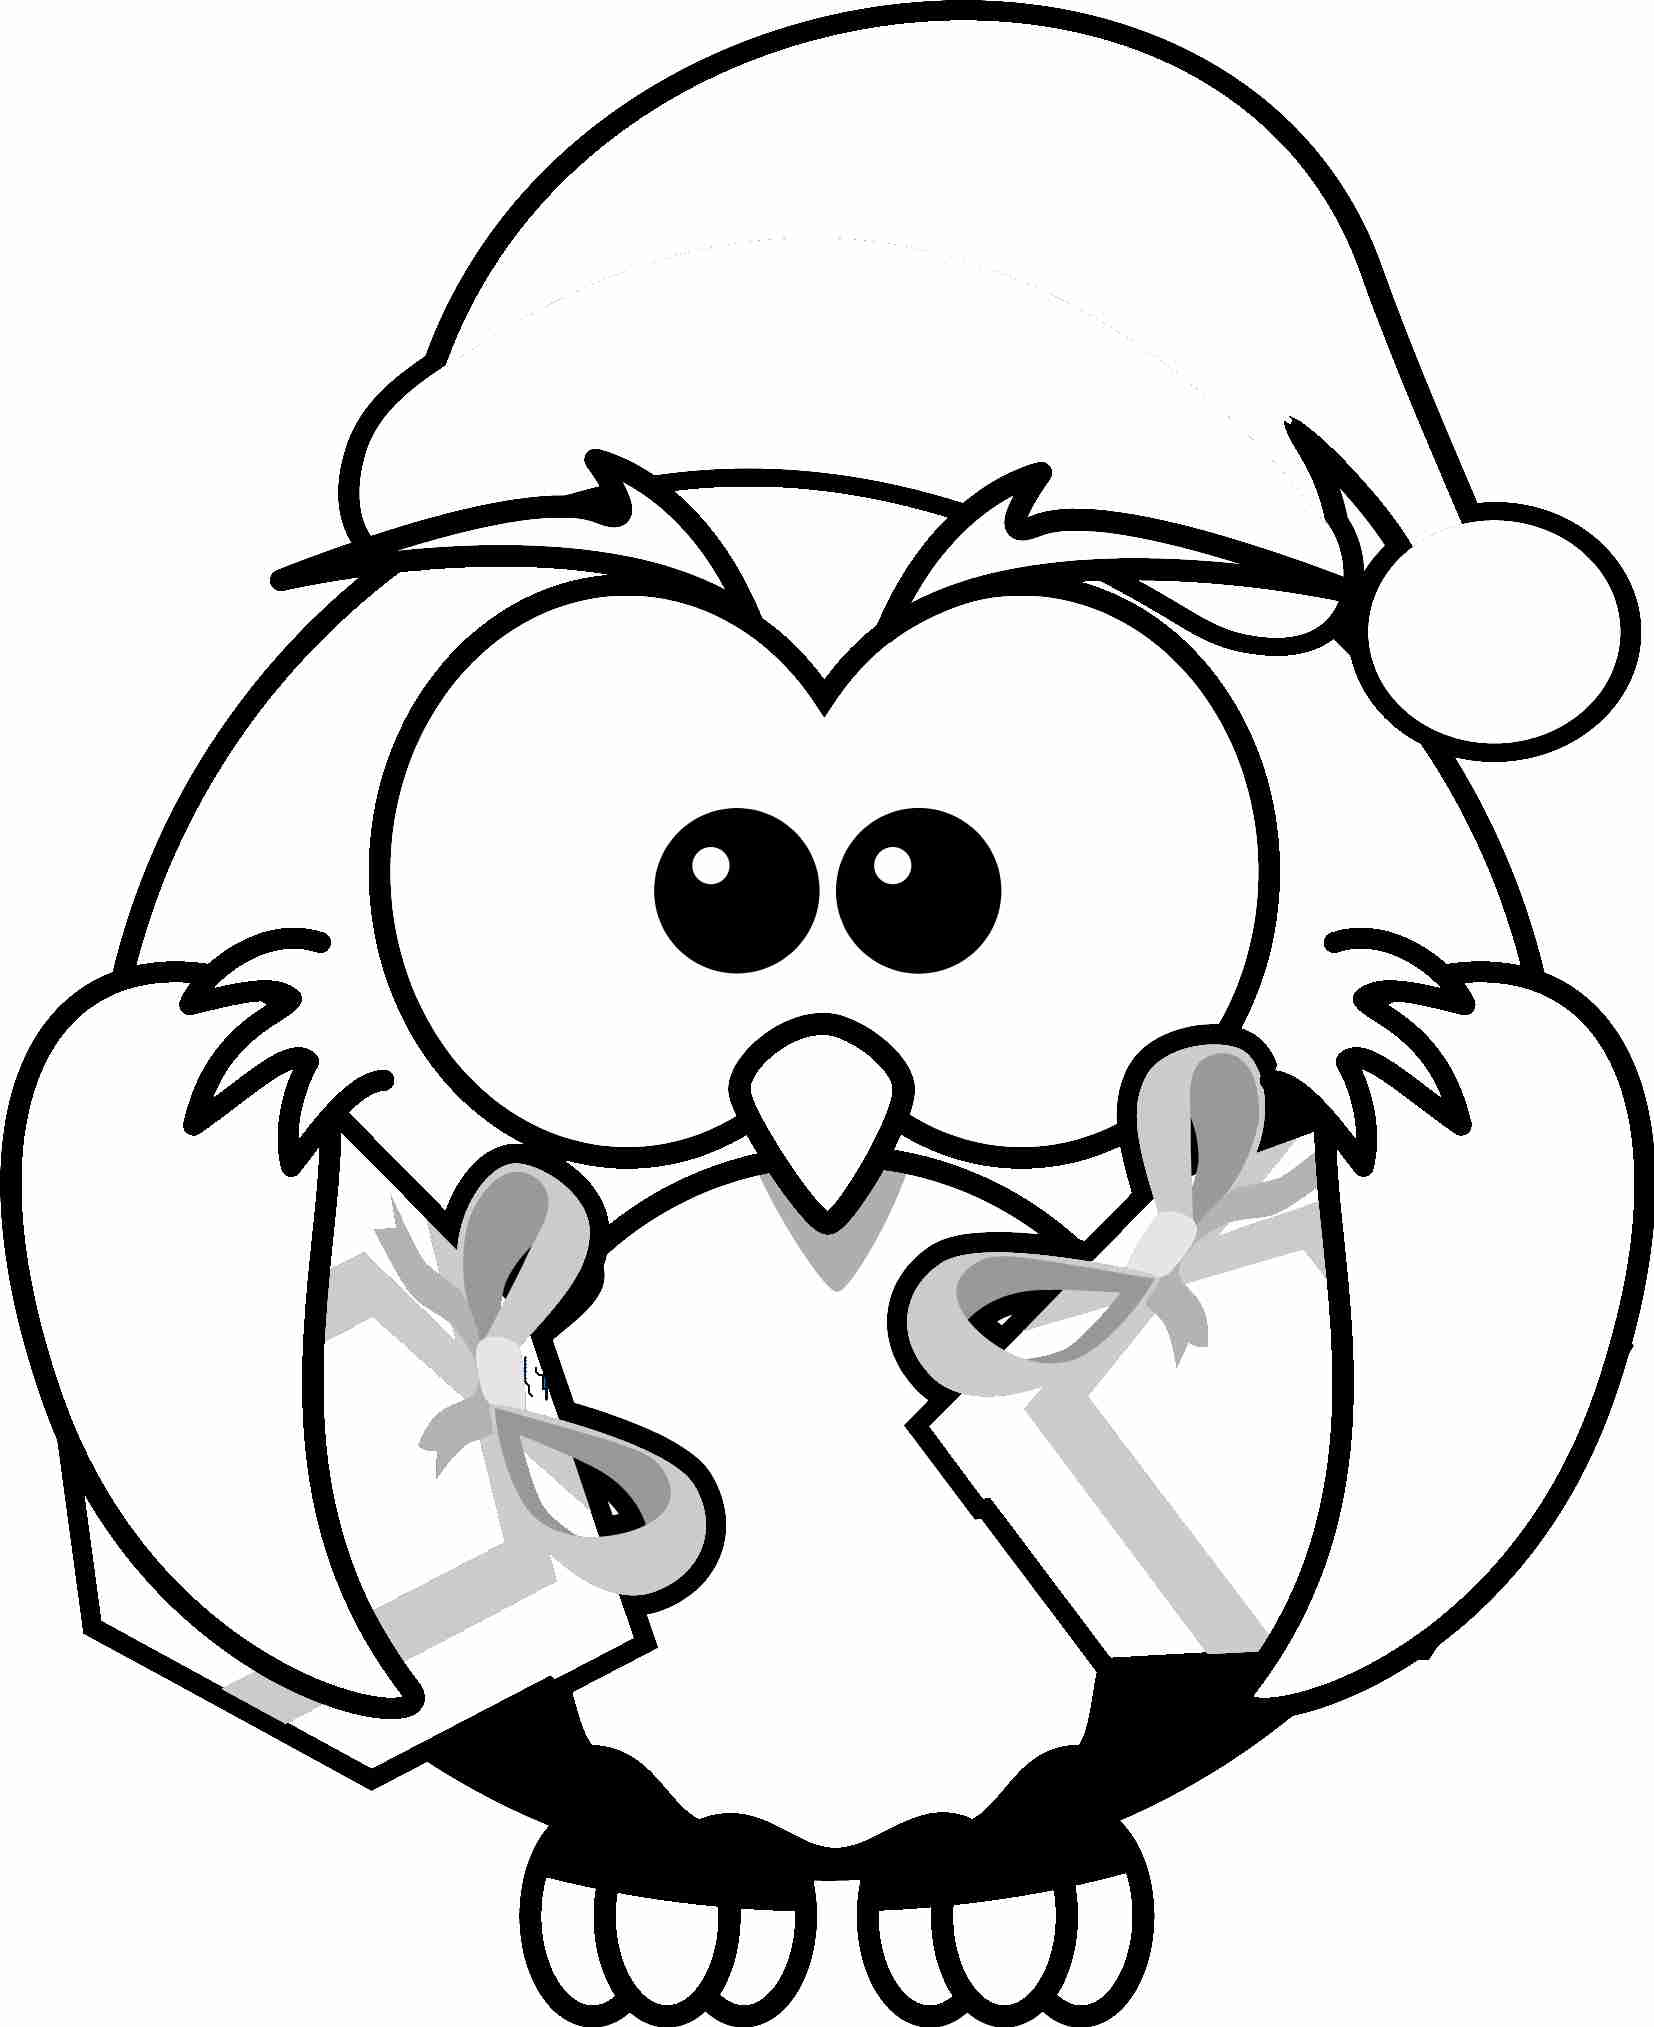 istmas coloring pages - photo#12